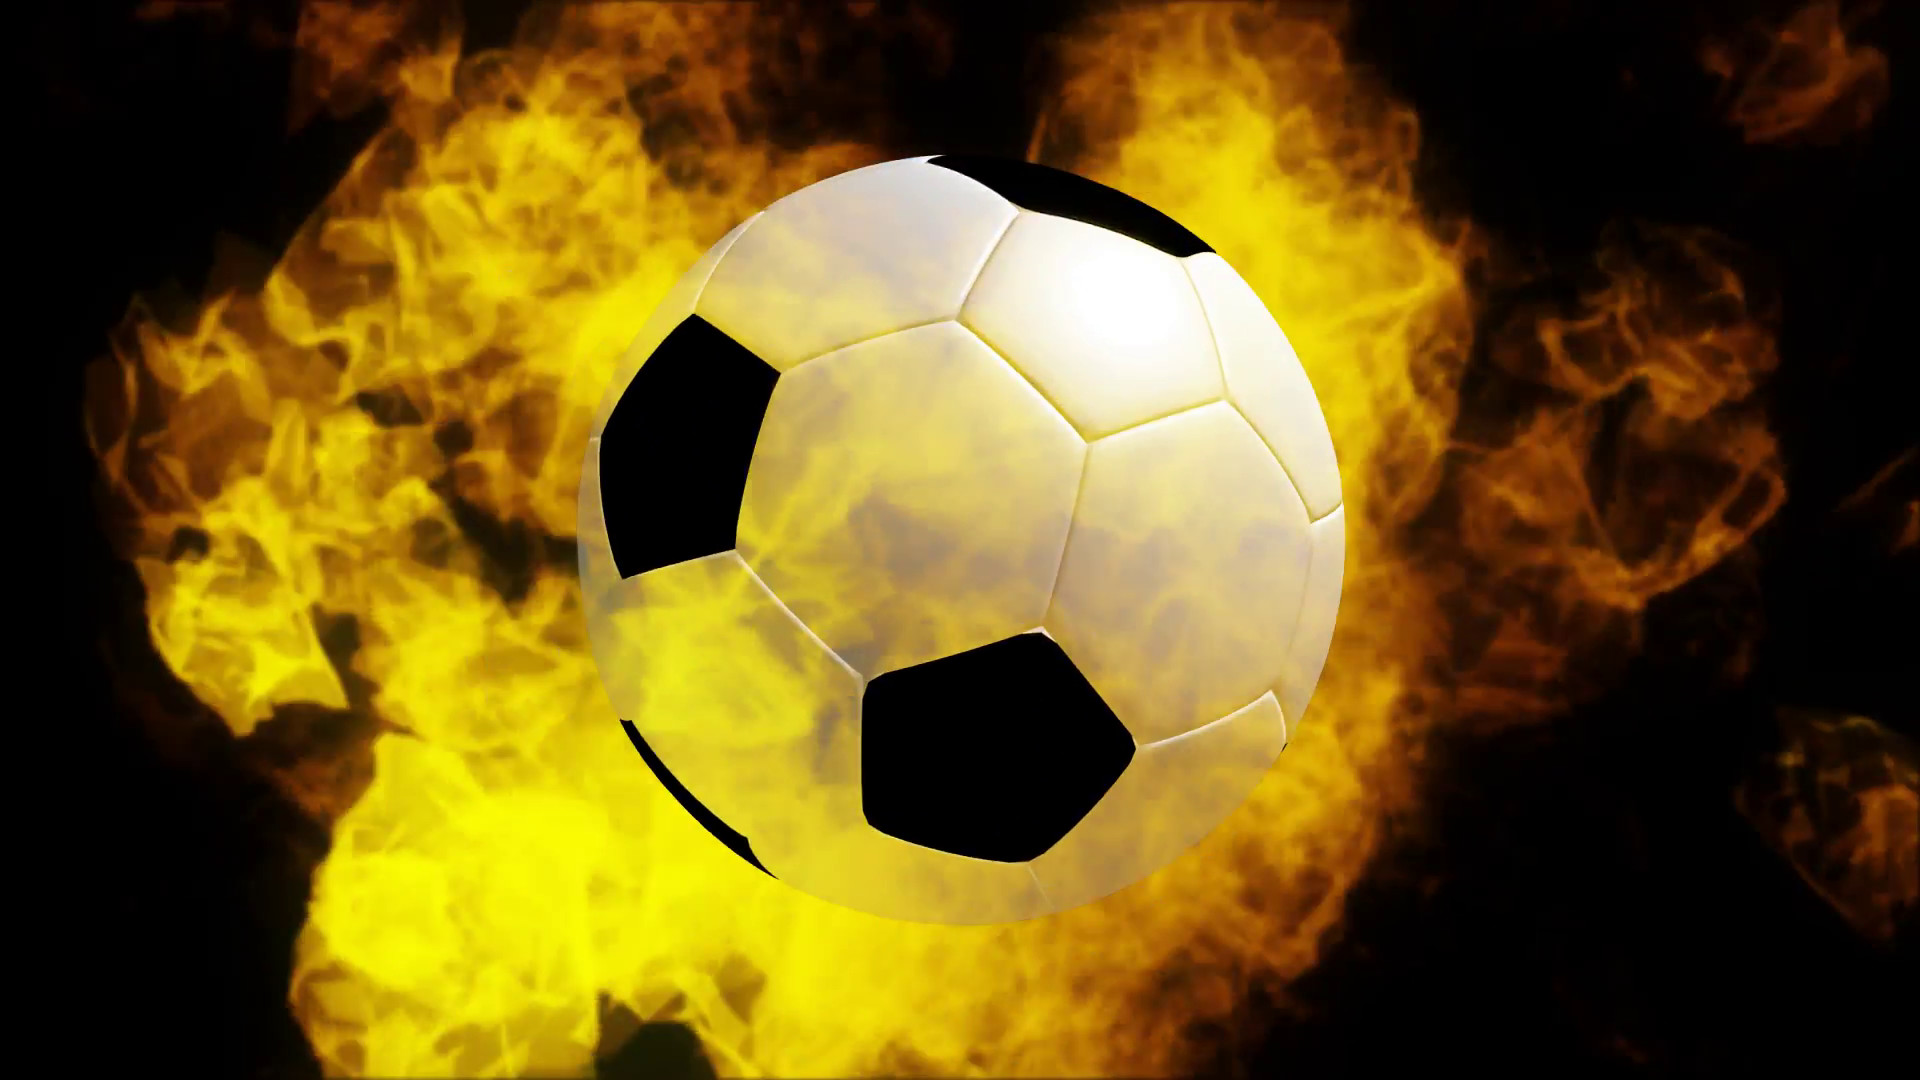 Cr7 Hd Wallpapers 1080p Flaming Soccer Ball Wallpaper 55 Images